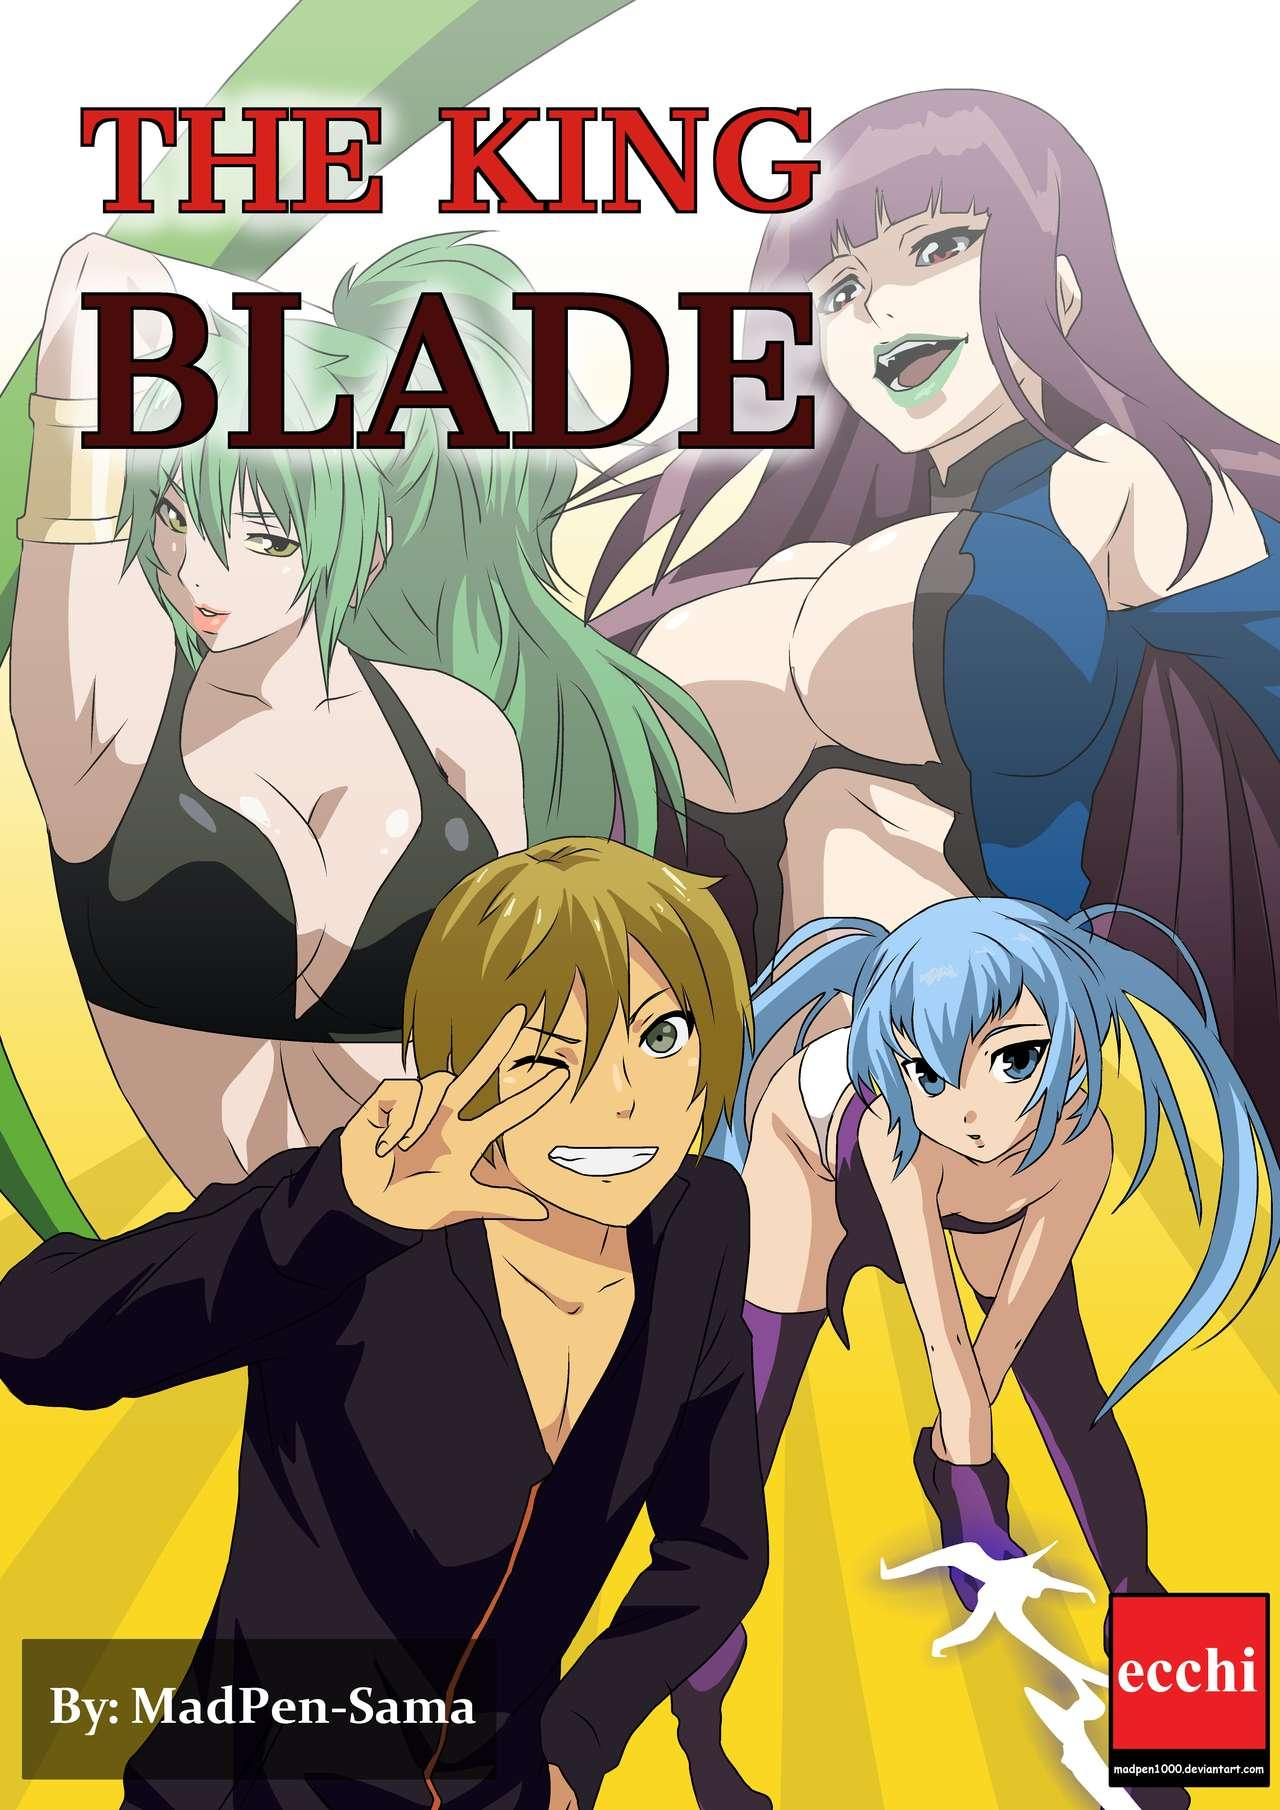 The King Blade 0